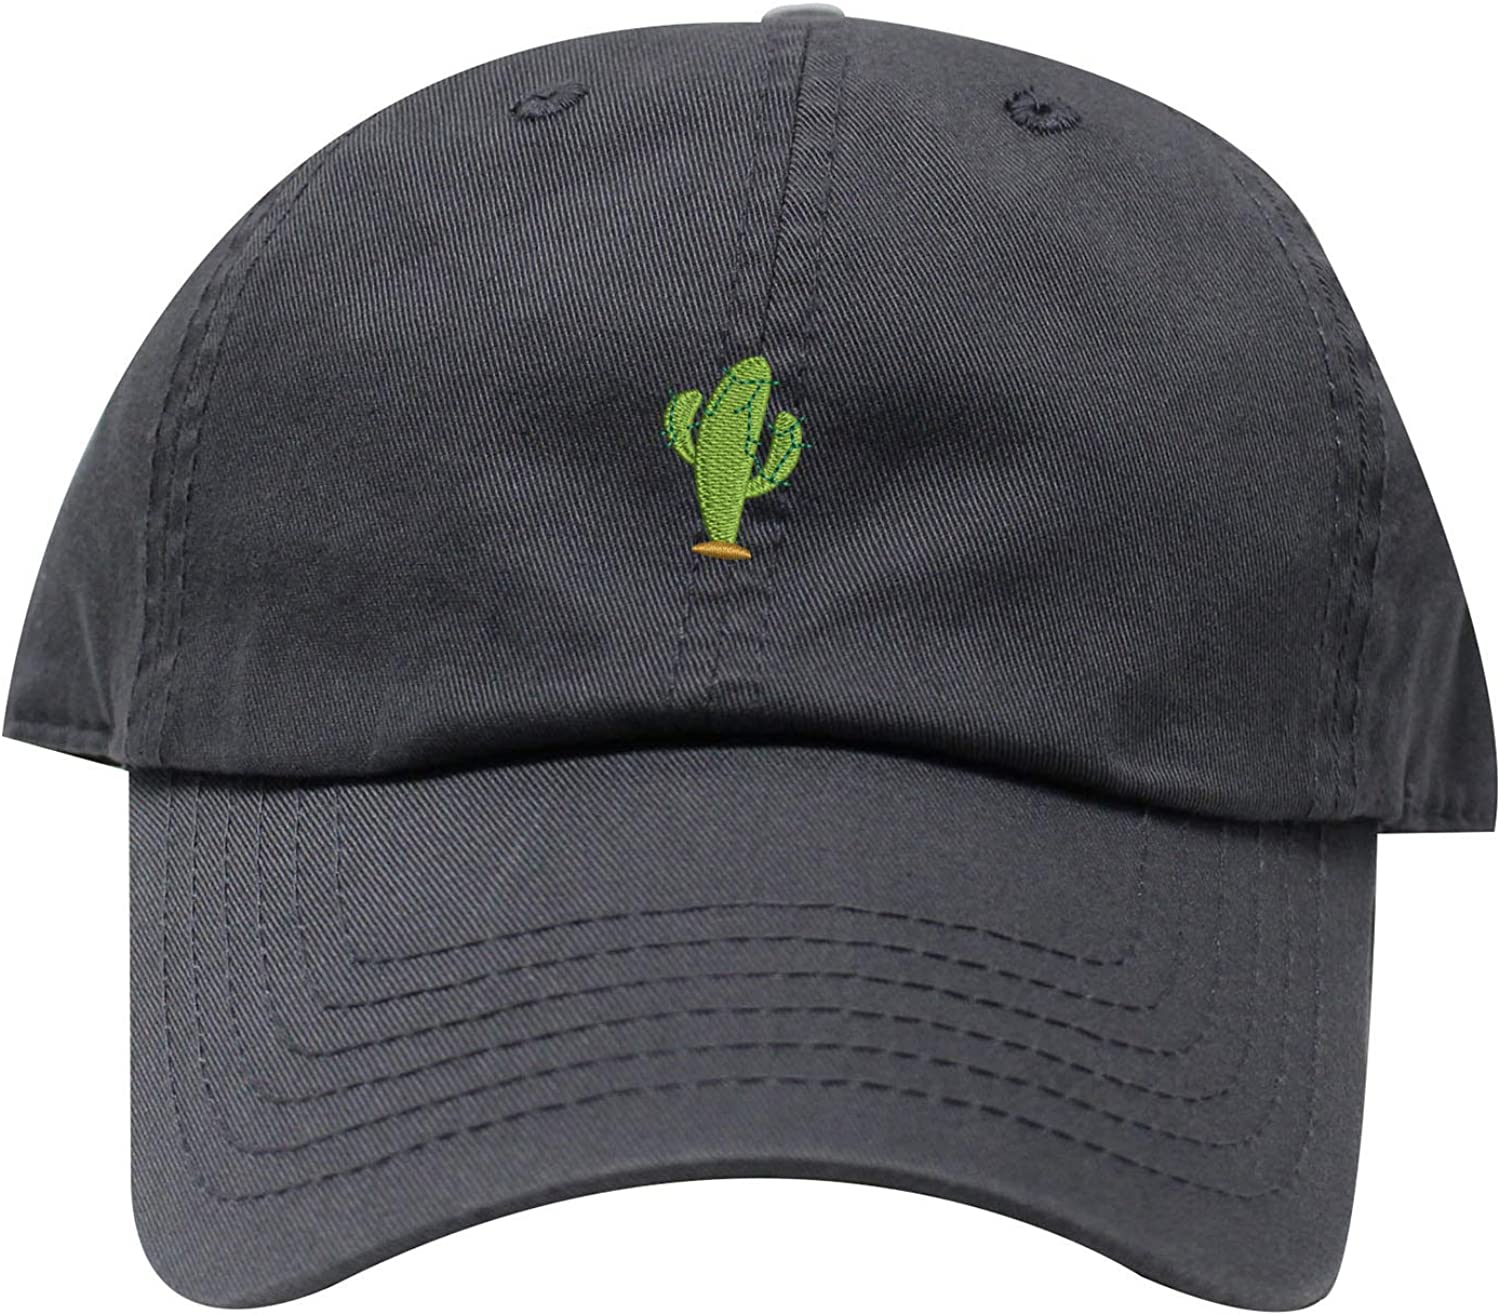 INK STITCH Cactus Embroidered Logo Unstructured Baseball Caps - 21 Colors